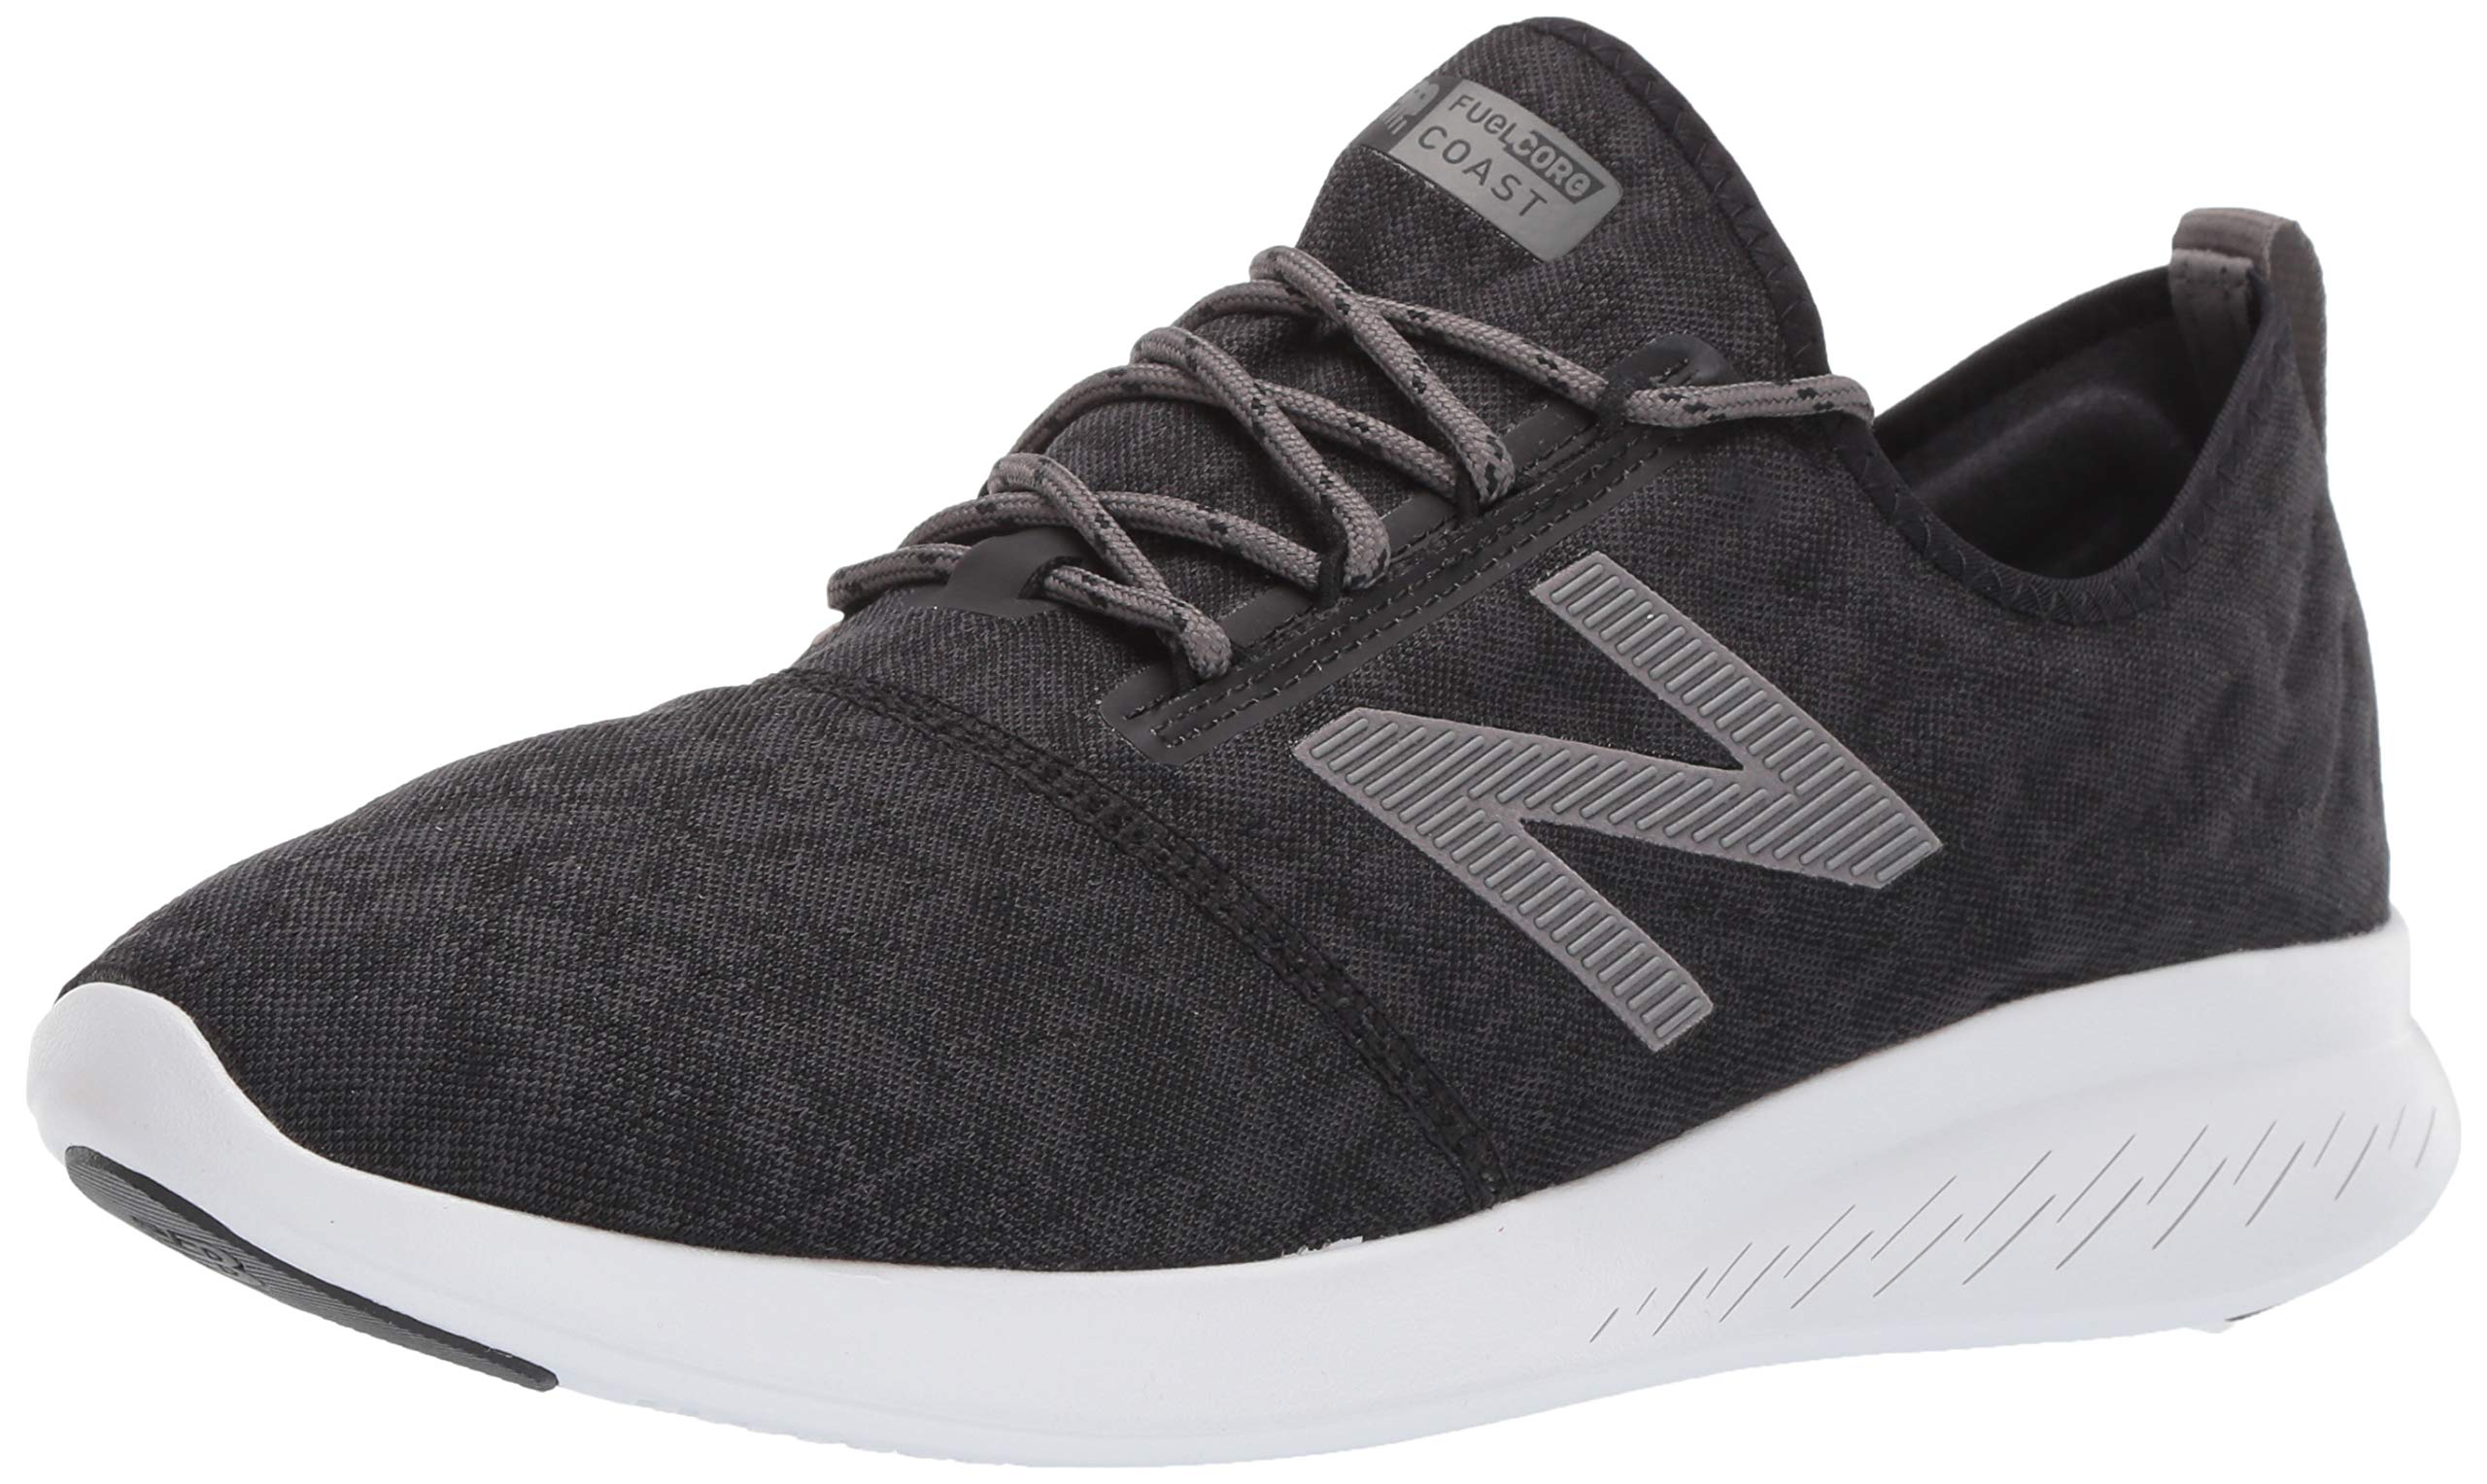 New Balance Men's Coast V4 FuelCore Running Shoe, Black/Phantom, 11 D US